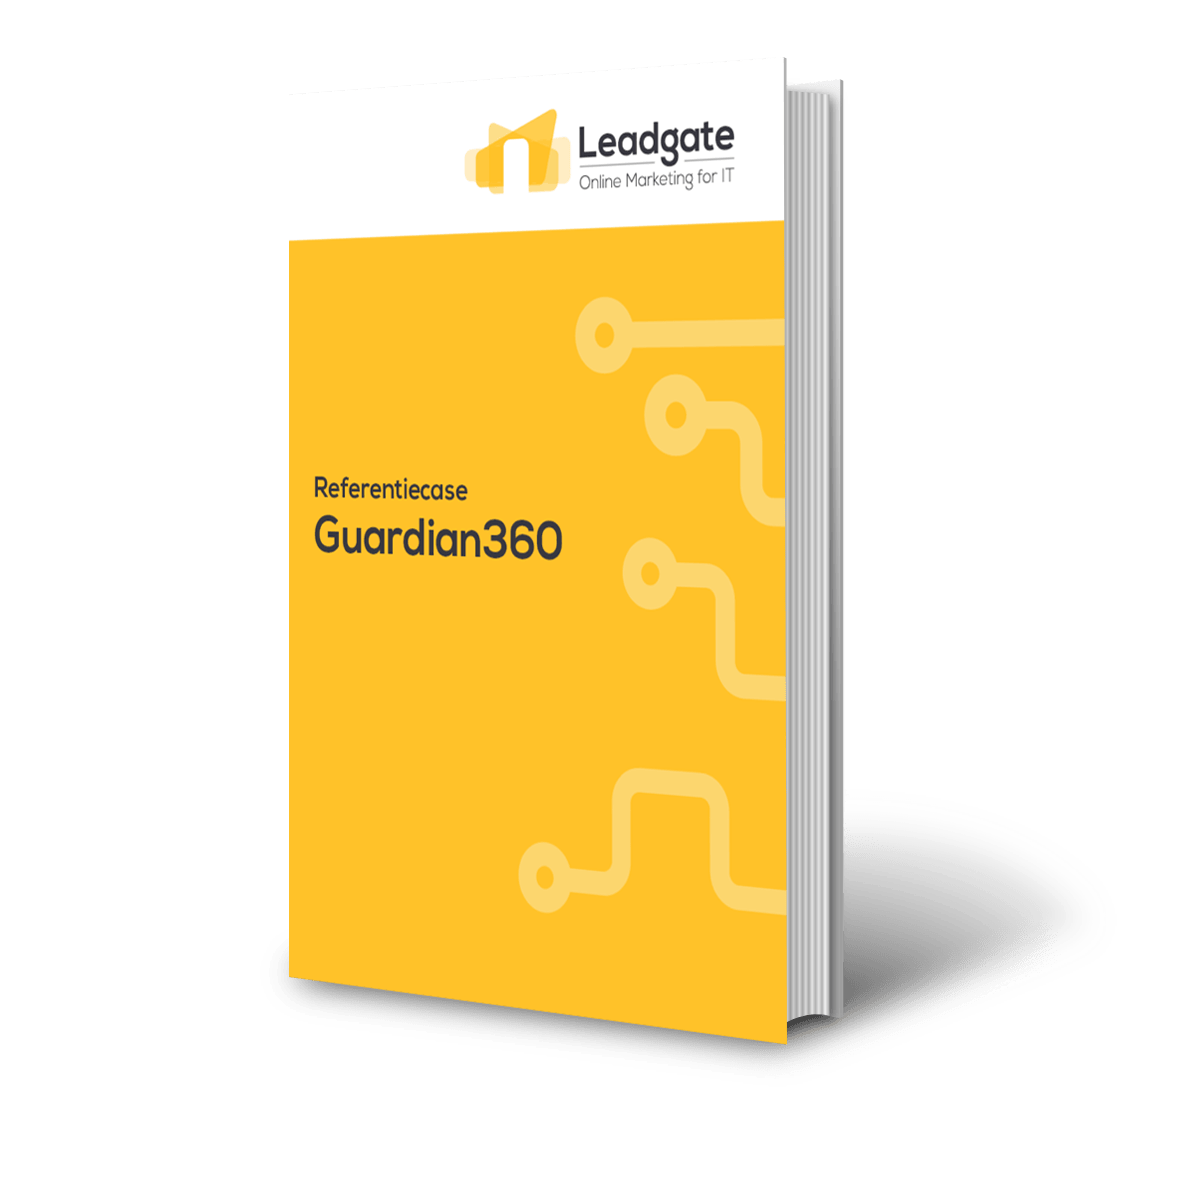 Referentiecase Guardian360